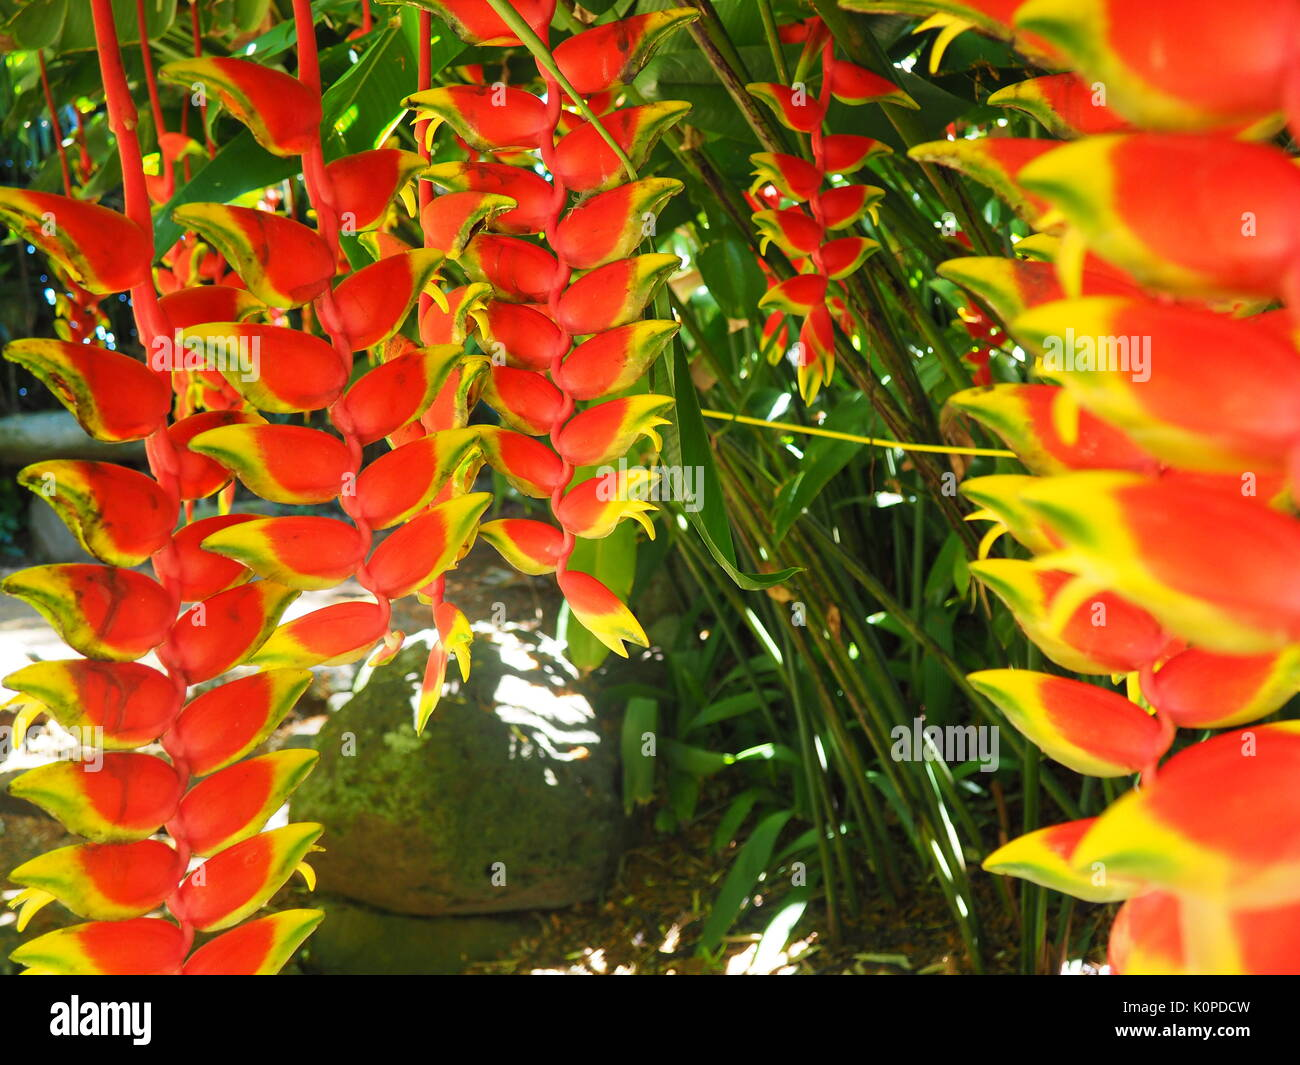 Heliconia, Lobster Claw Plants - Stock Image